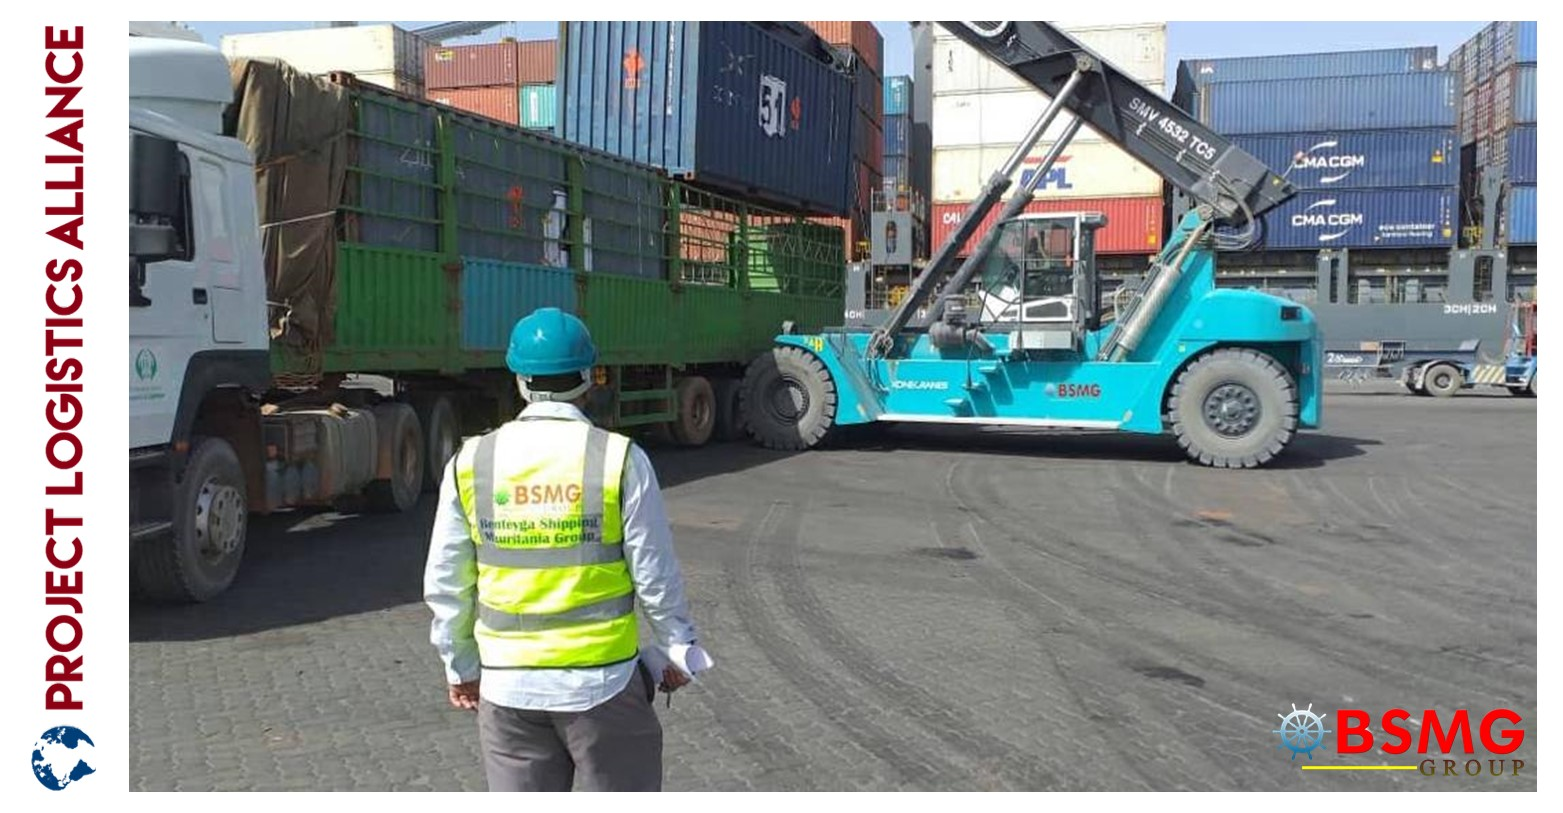 BSMG Group Completes The Fastest Off Loading Operations At Port Of Nouakchott